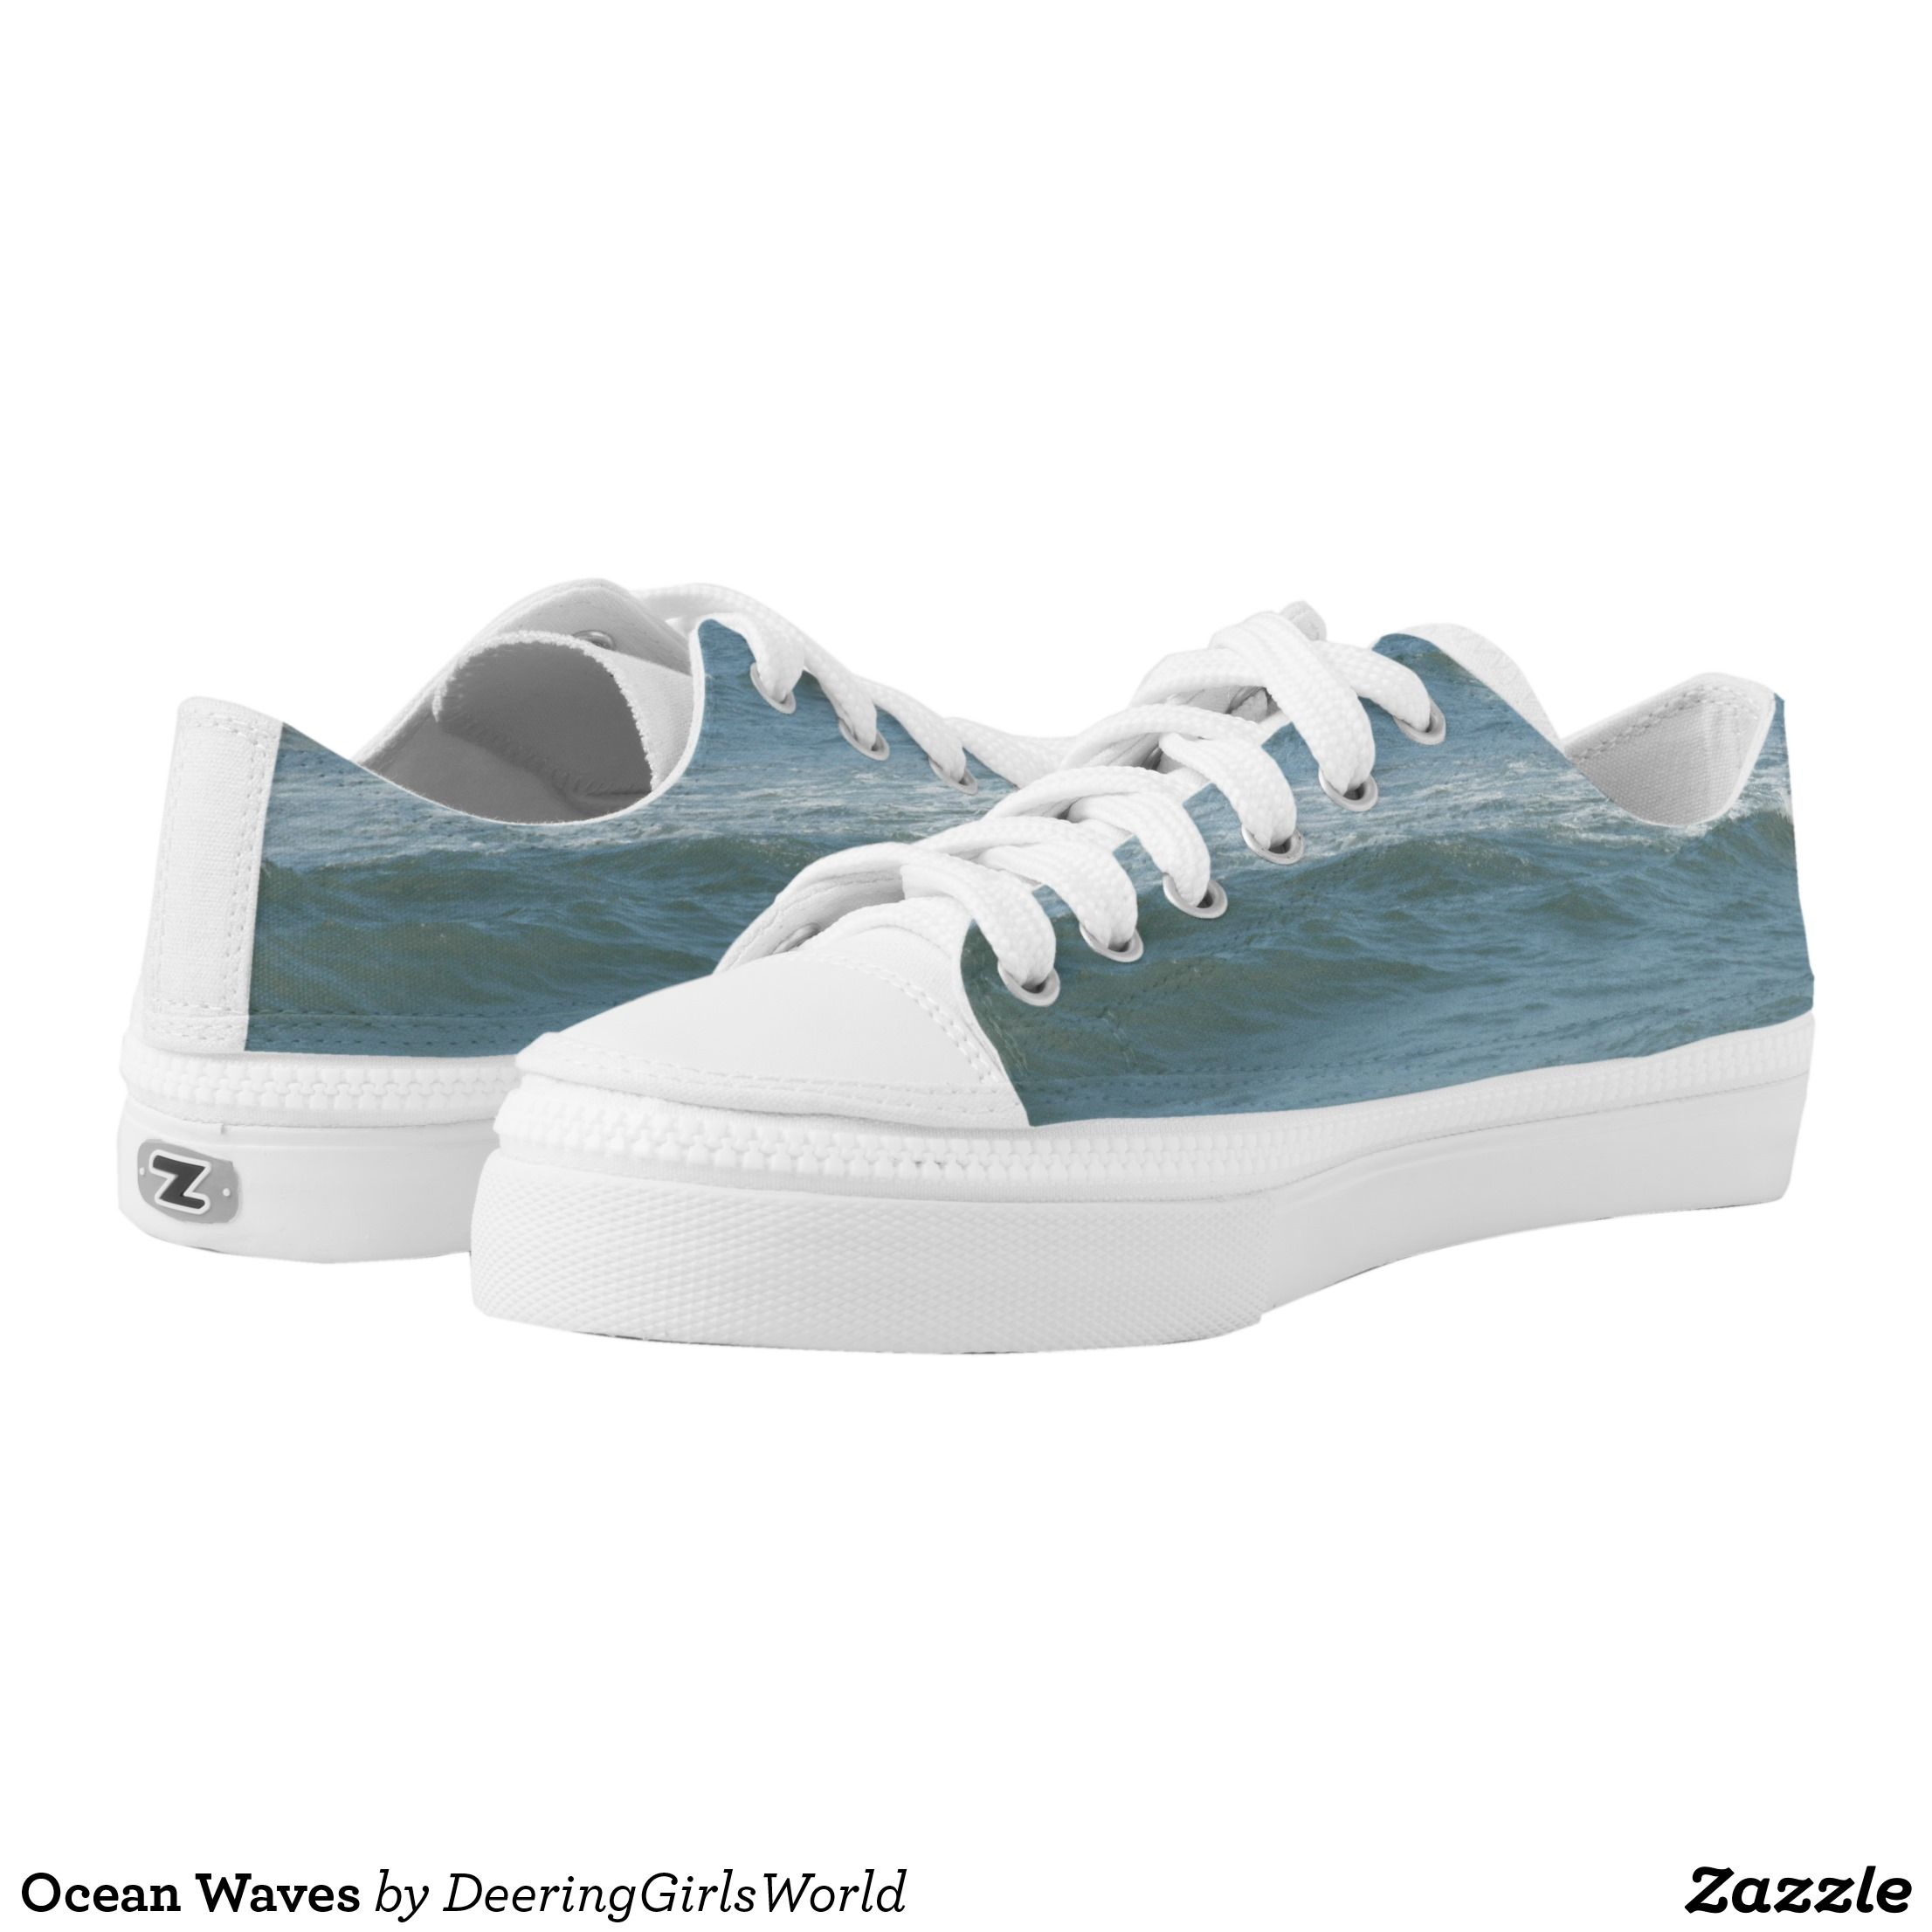 bd34a9a9b522 Ocean Waves Low-Top Sneakers - Canvas-Top Rubber-Sole Athletic Shoes By